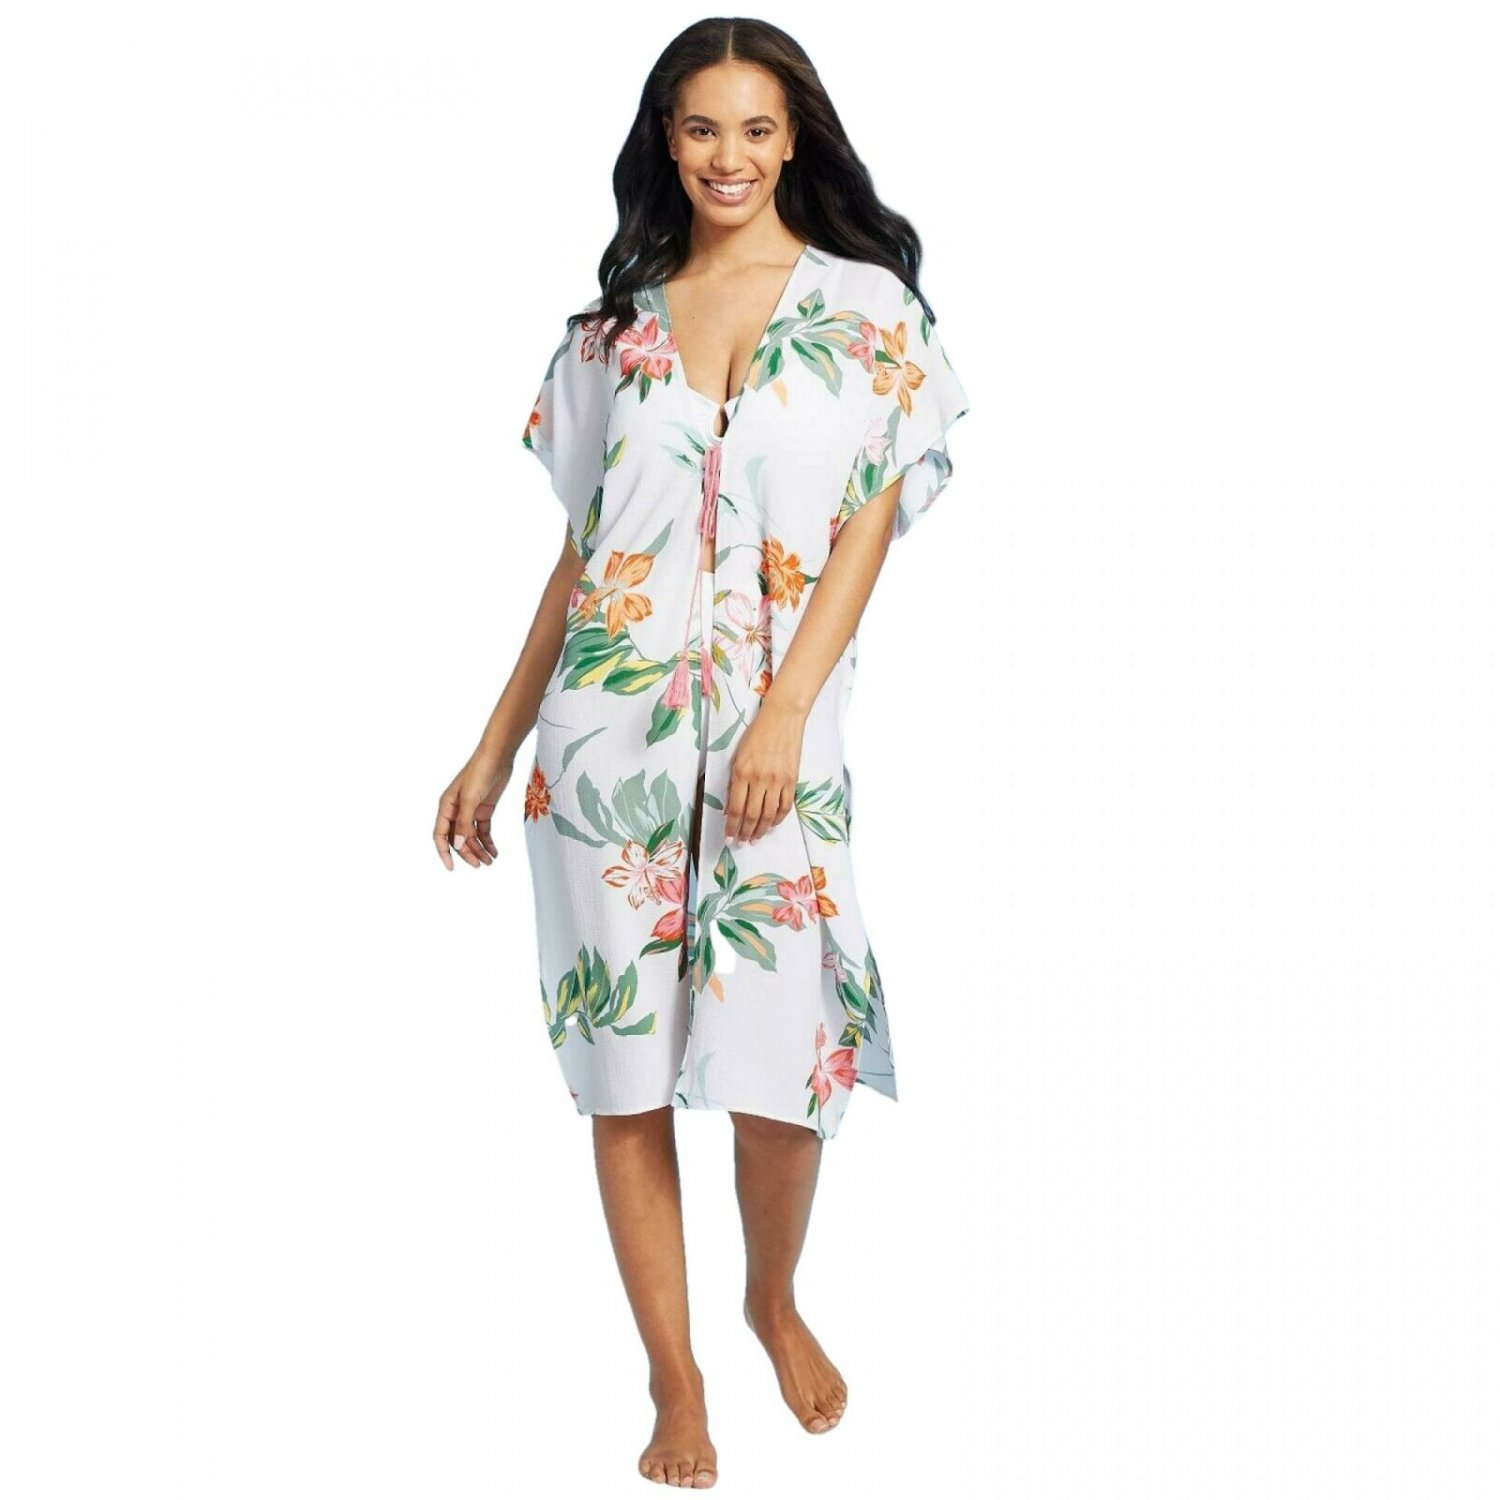 Cover 2 Cover Women's Smocked Back Kimono Cover Up Small White Tropical